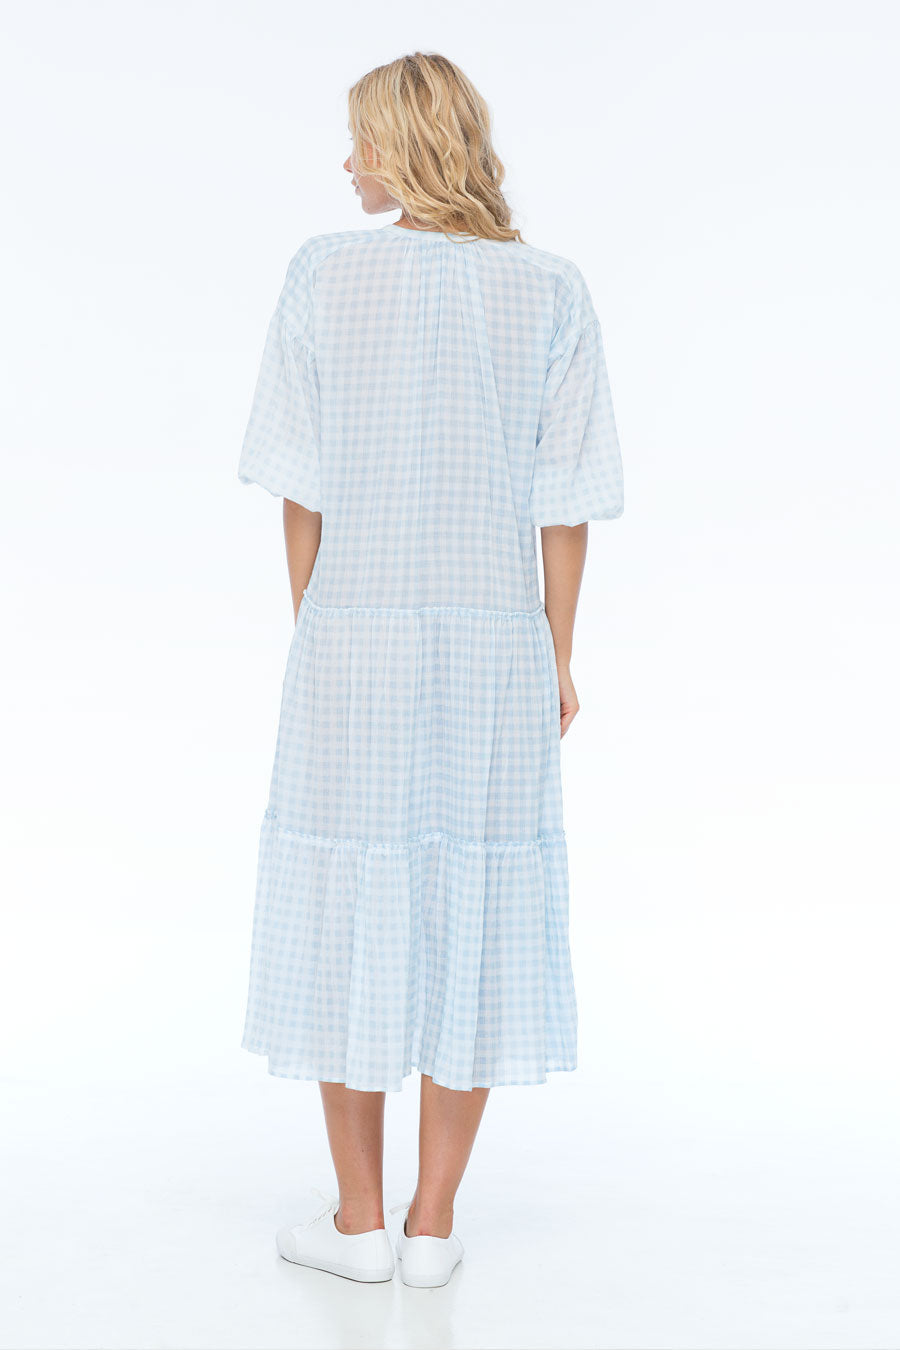 DAPPER DAN GINGHAM BLUE MIDI DRESS